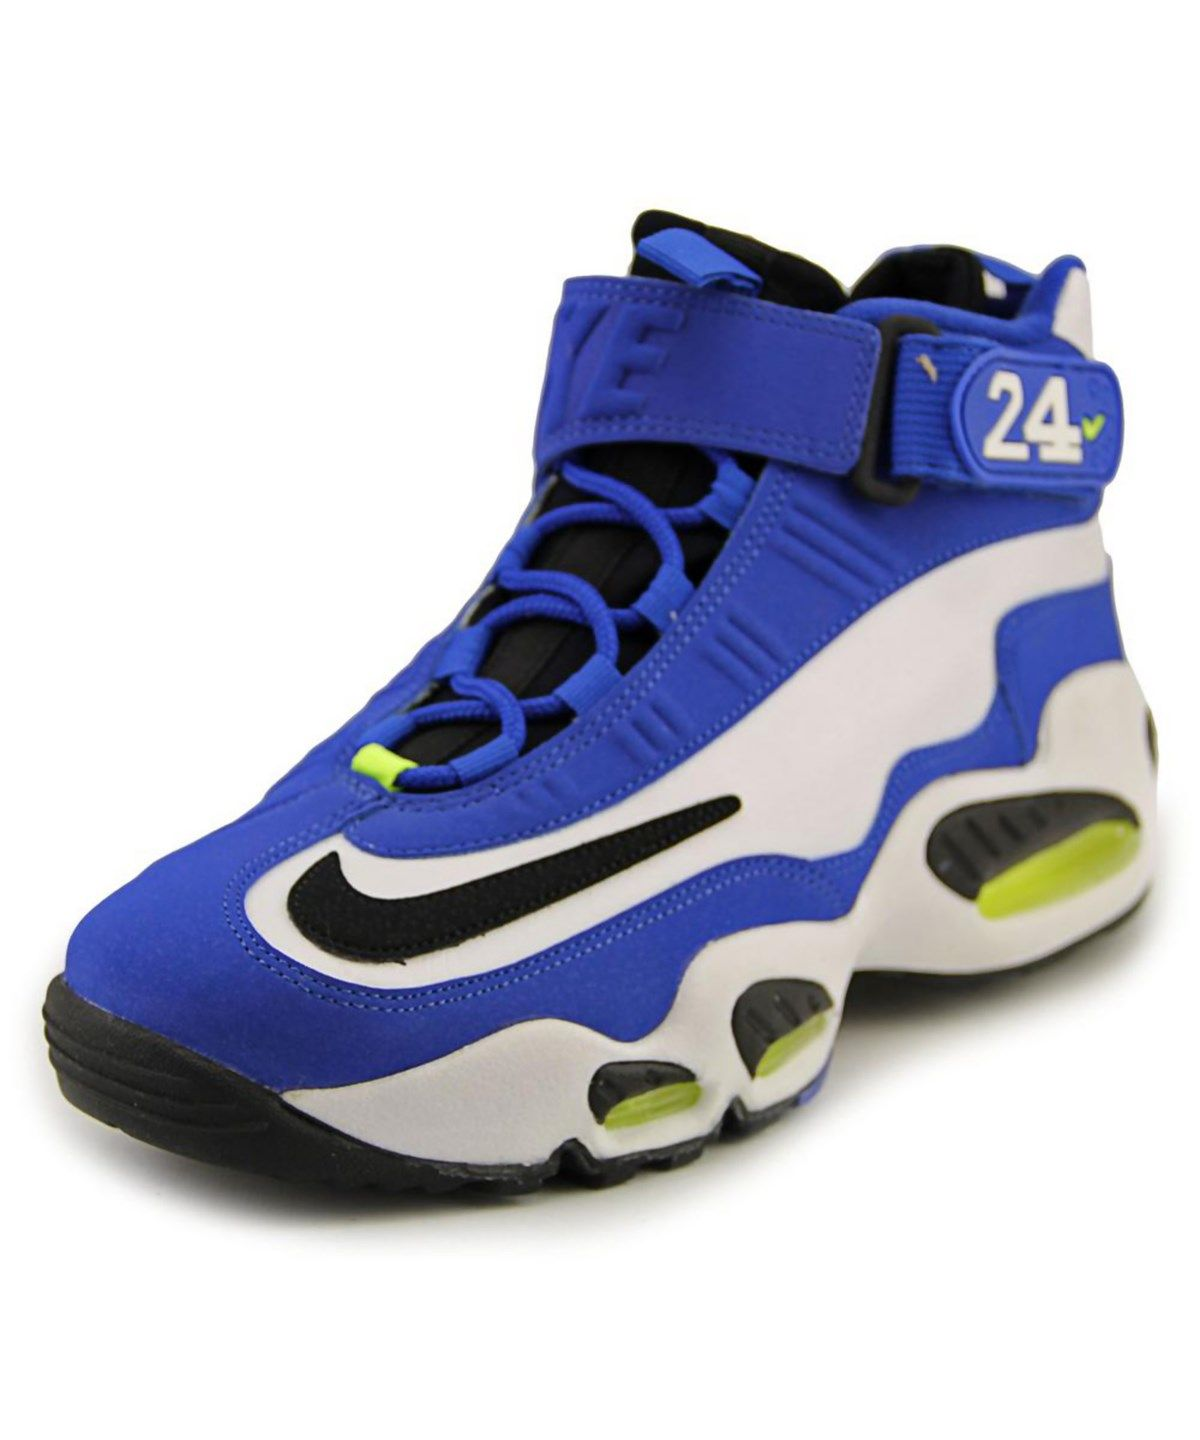 online retailer 47257 5c6c9 NIKE NIKE AIR GRIFFEY MAX 1 ROUND TOE SYNTHETIC BASKETBALL SHOE .  nike   shoes  sneakers